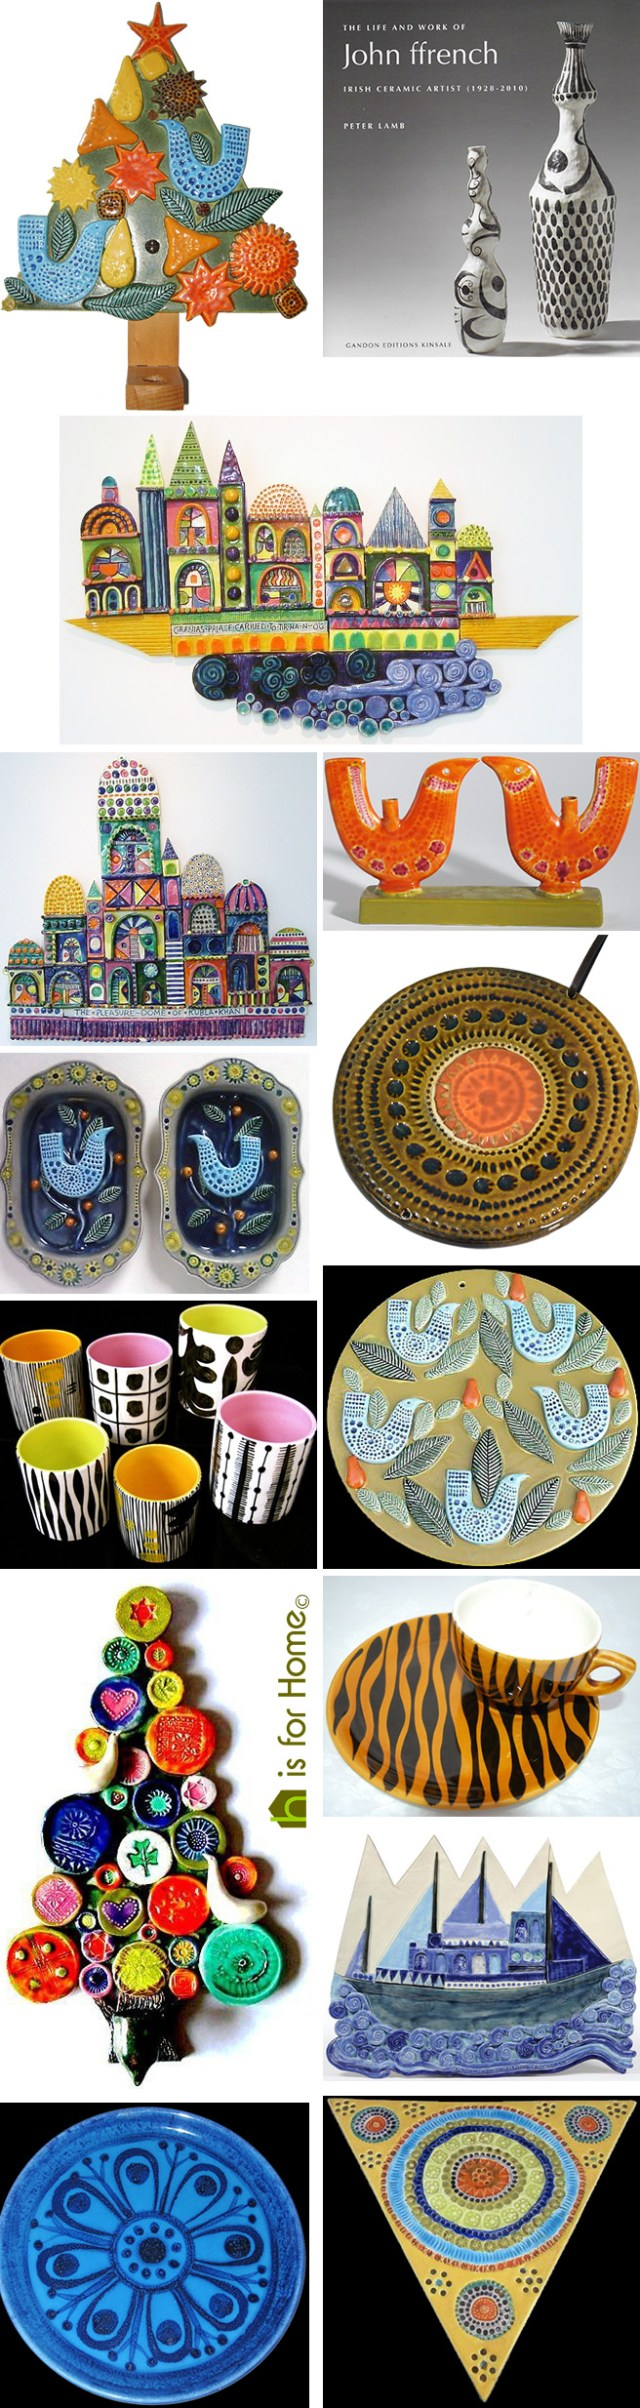 Mosaic of John ffrench pottery designs | H is for Home